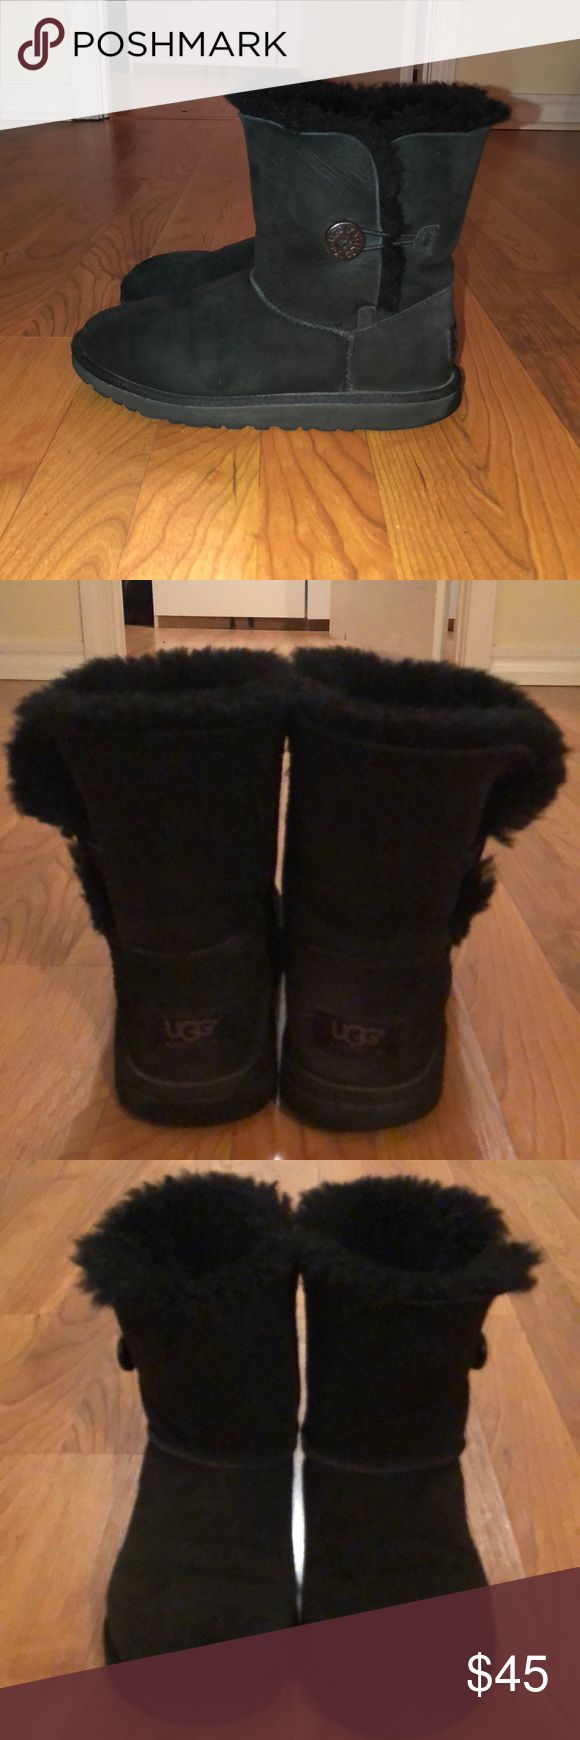 UGG BAILEY BUTTONS UGG BAILEY BUTTONS SIZE: 5  COLOR: BLACK ***these are used, but still have tons of life left. Still very fluffy and comfortable. They do need new insoles, but can be worn without them. Normal wear and tear, but nothing major wrong with them at all*** I ALWAYS ACCEPT REASONABLE OFFERS❤️ UGG Shoes Winter & Rain Boots